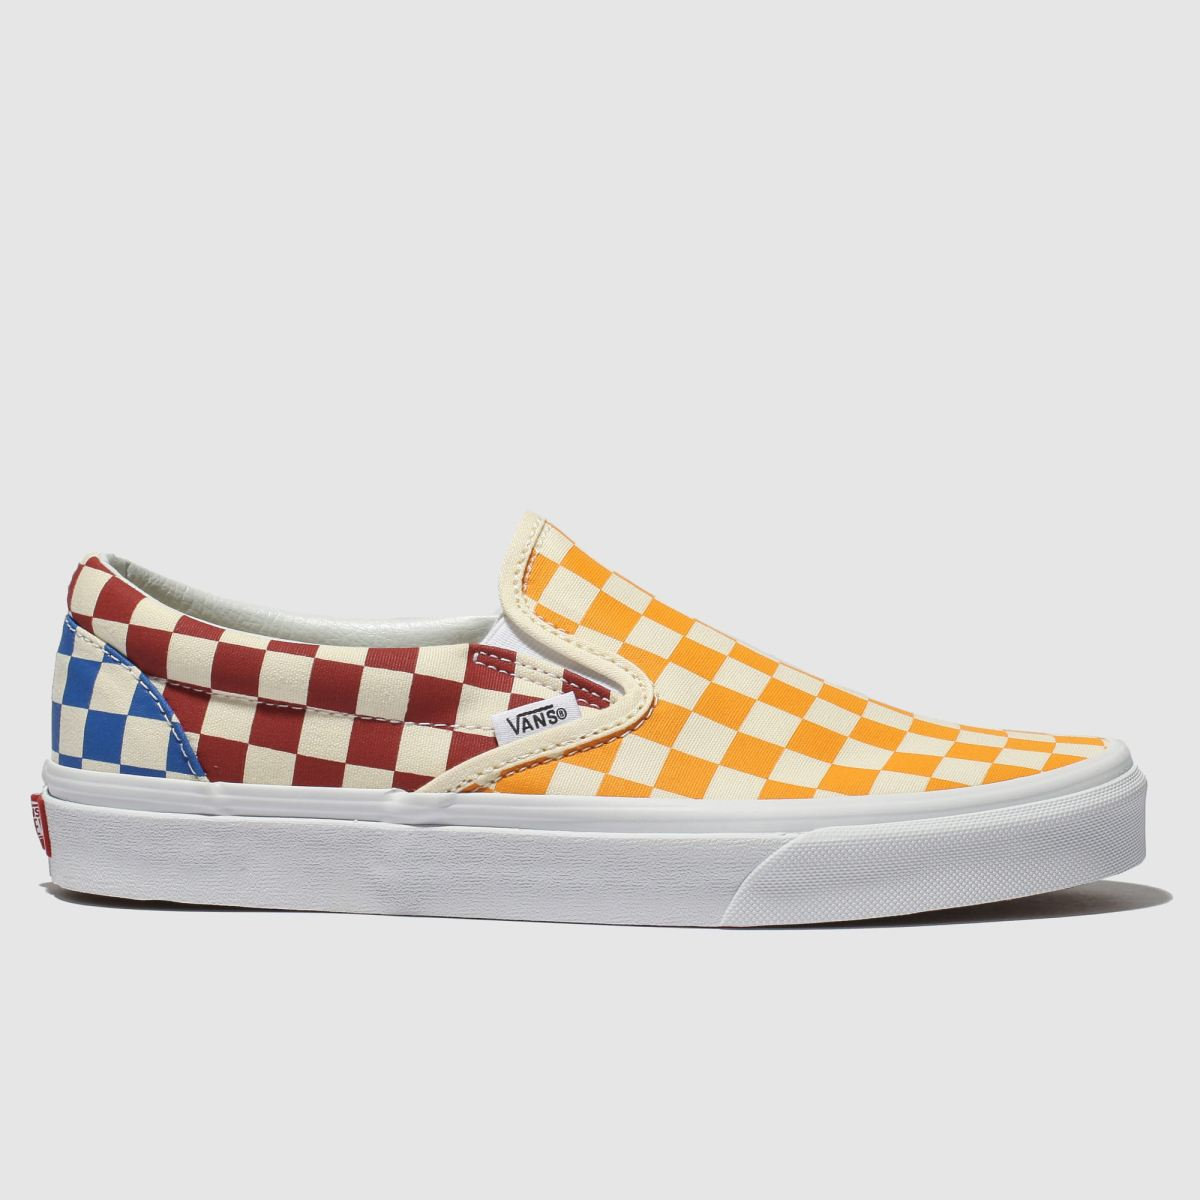 Vans Yellow & Red Classic Slip-on Checkerboard Trainers